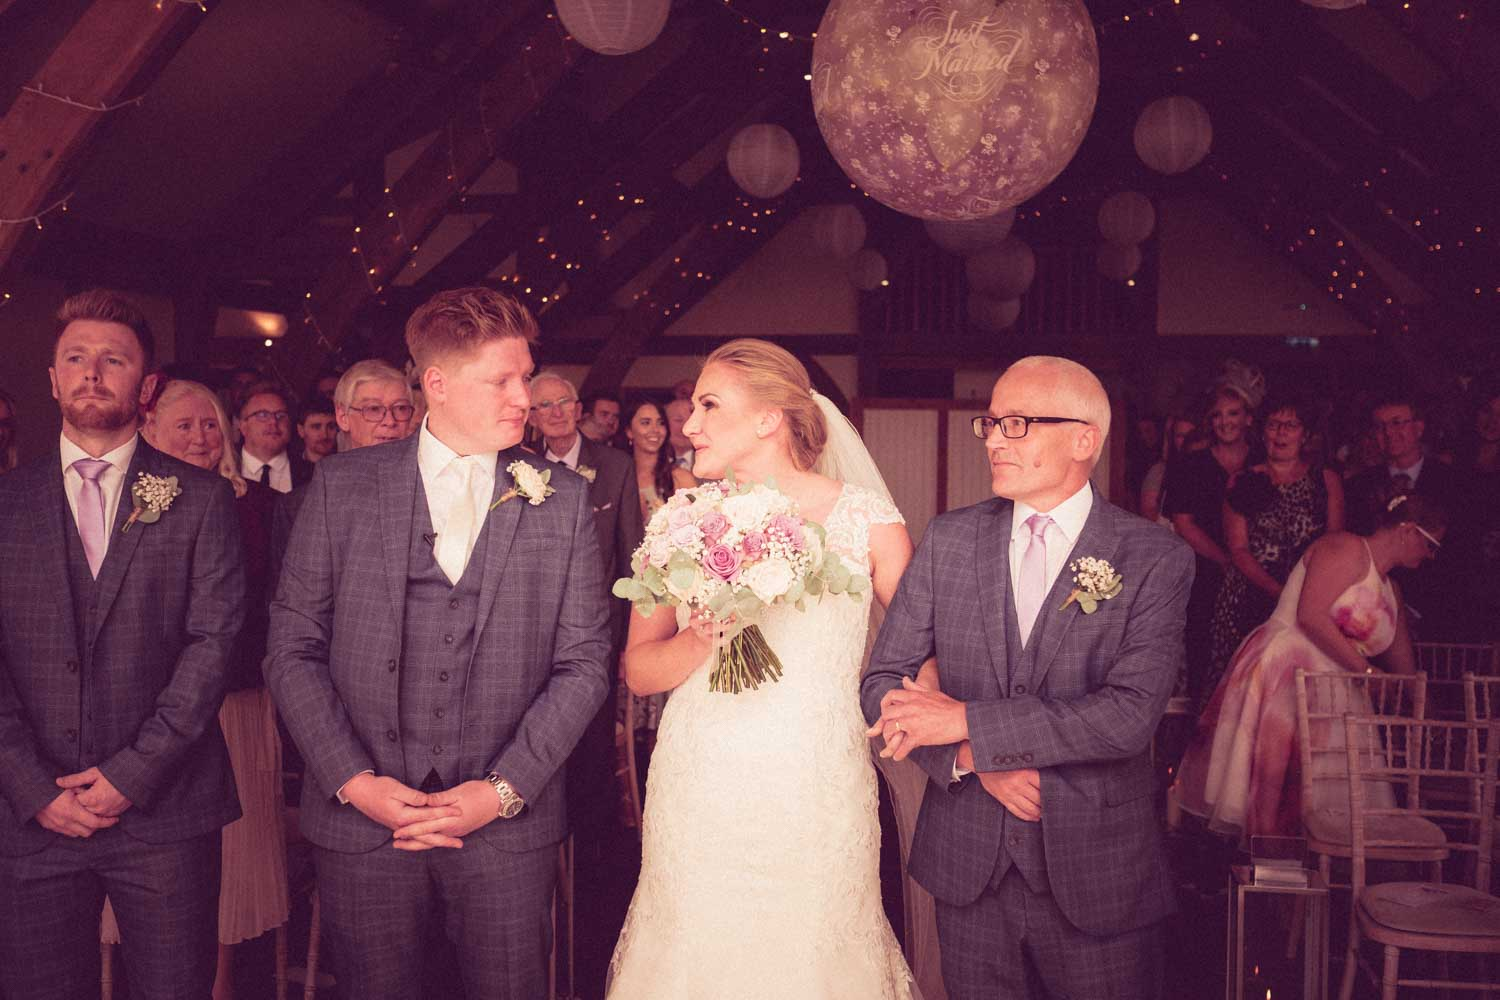 Bride arm in arm with Bride's father reach end of aisle, groom and bride share a quick glance